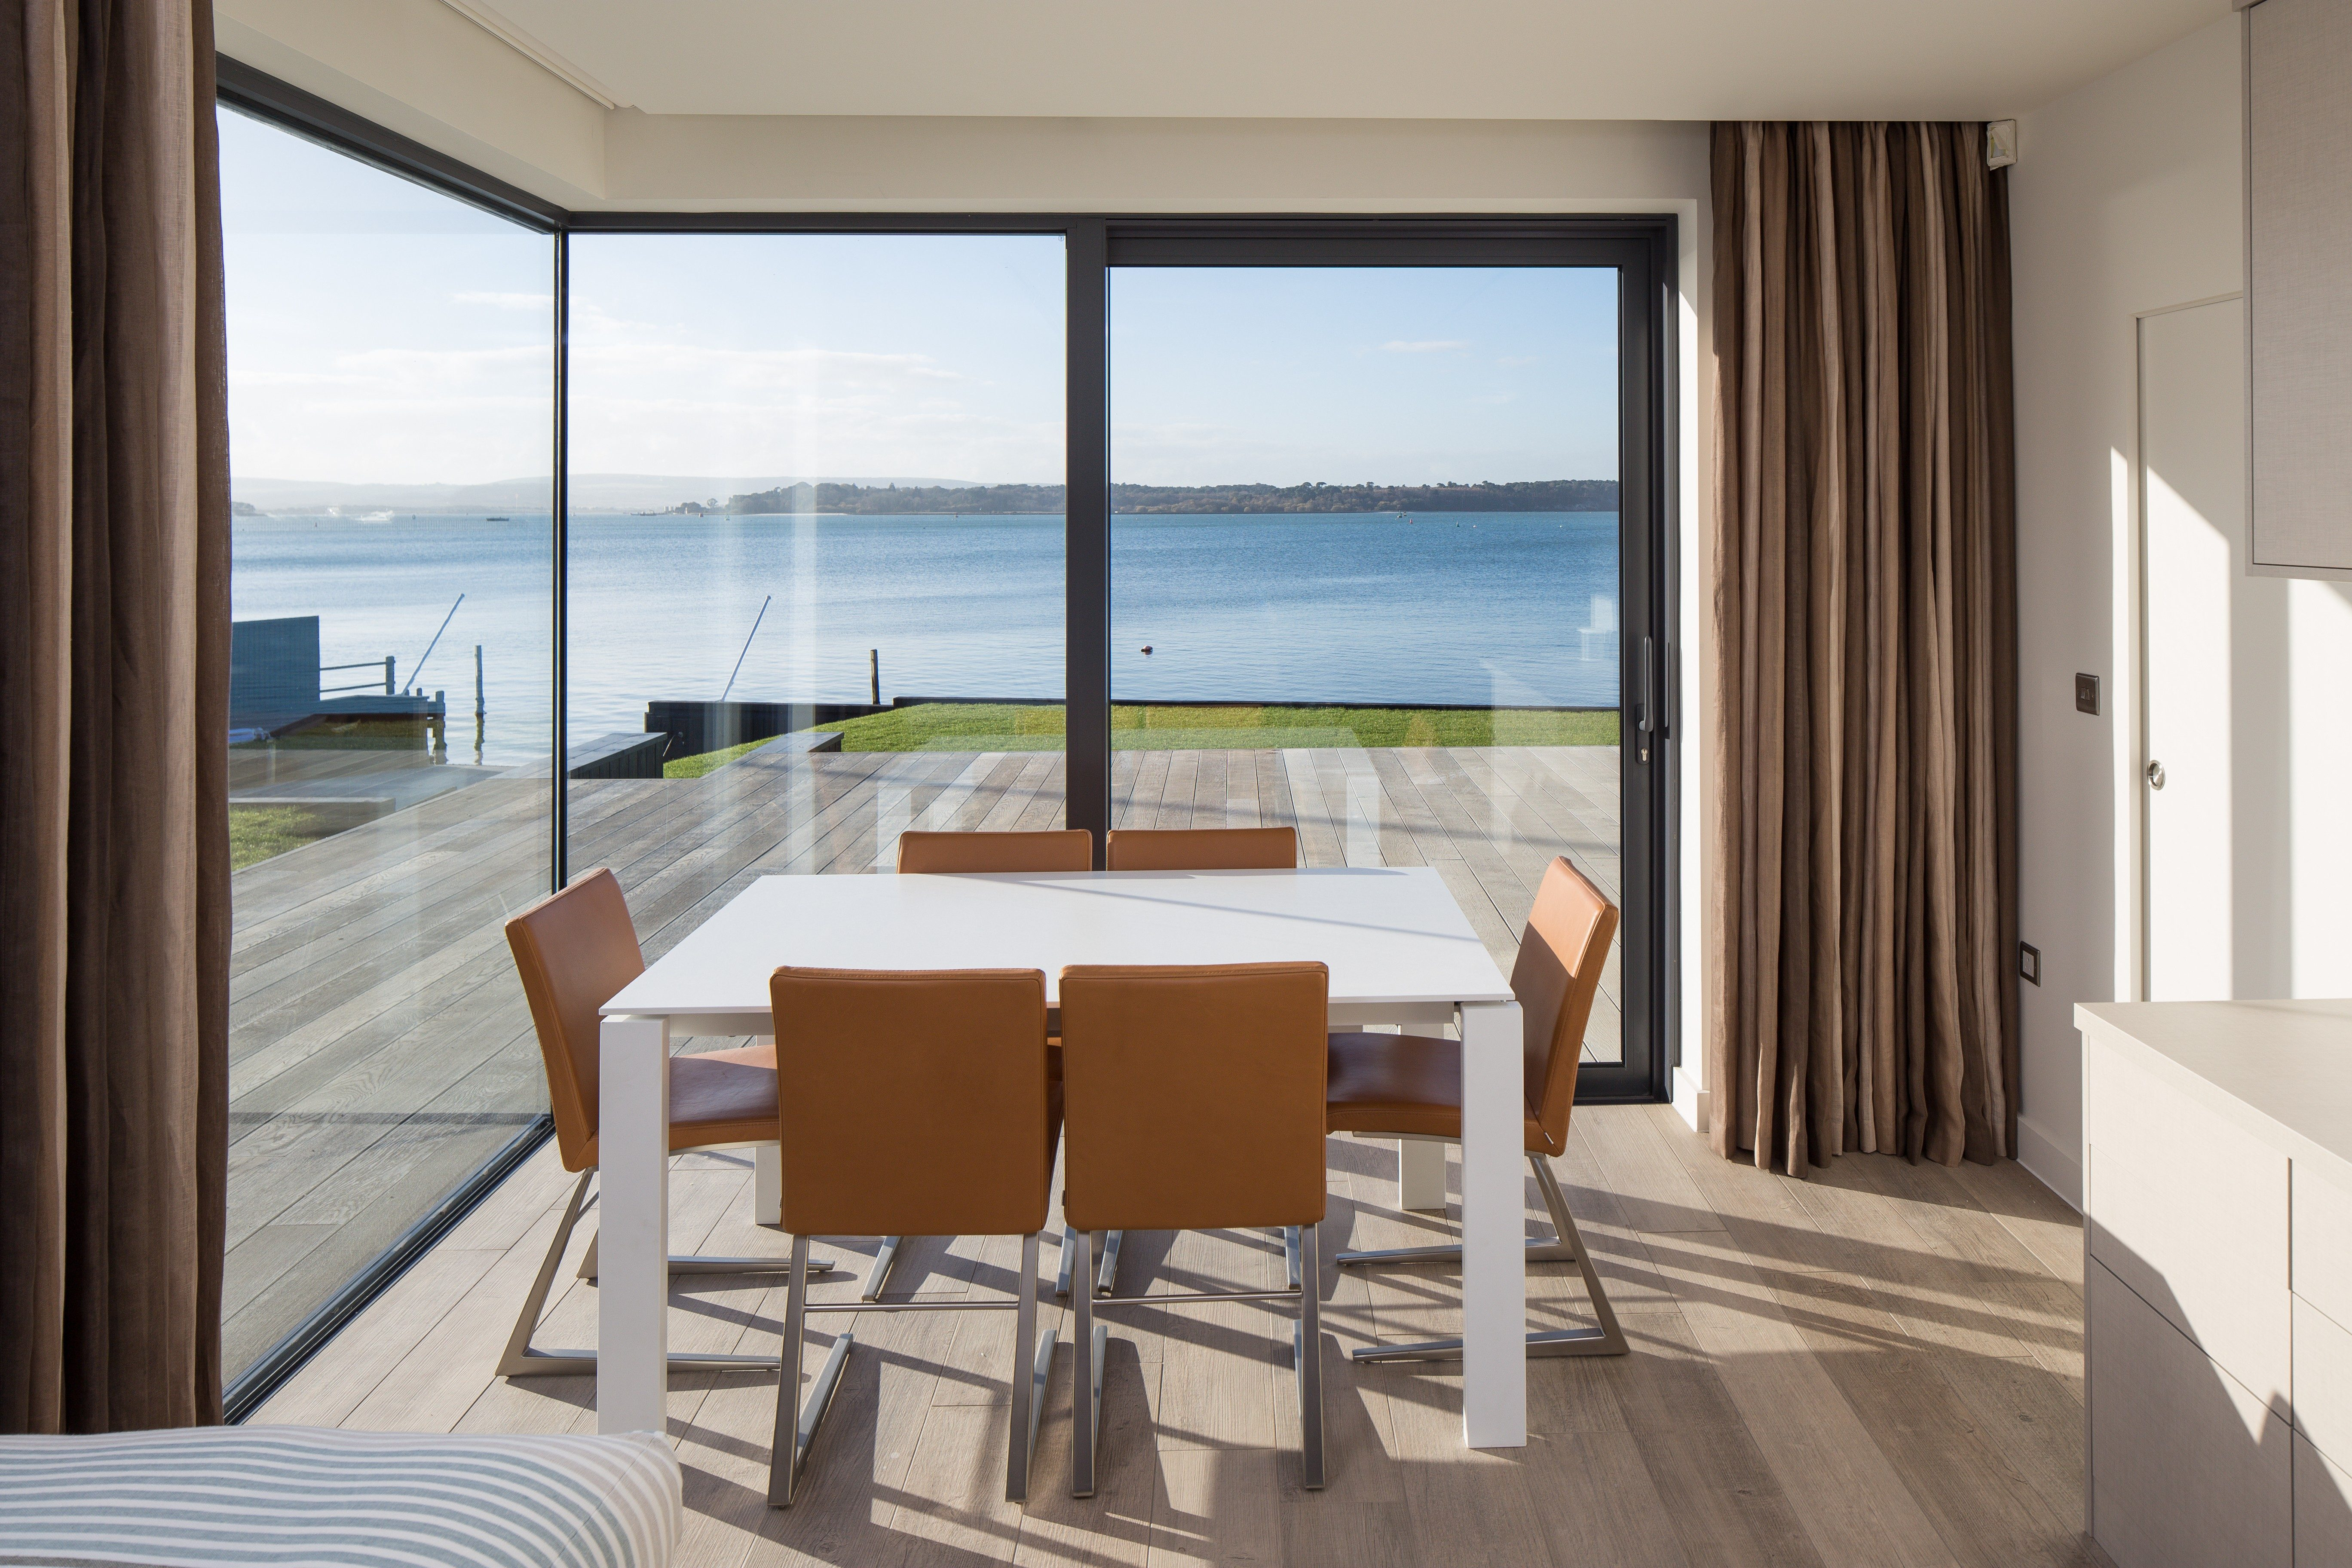 Dining Room on Waterfront Dorset UK